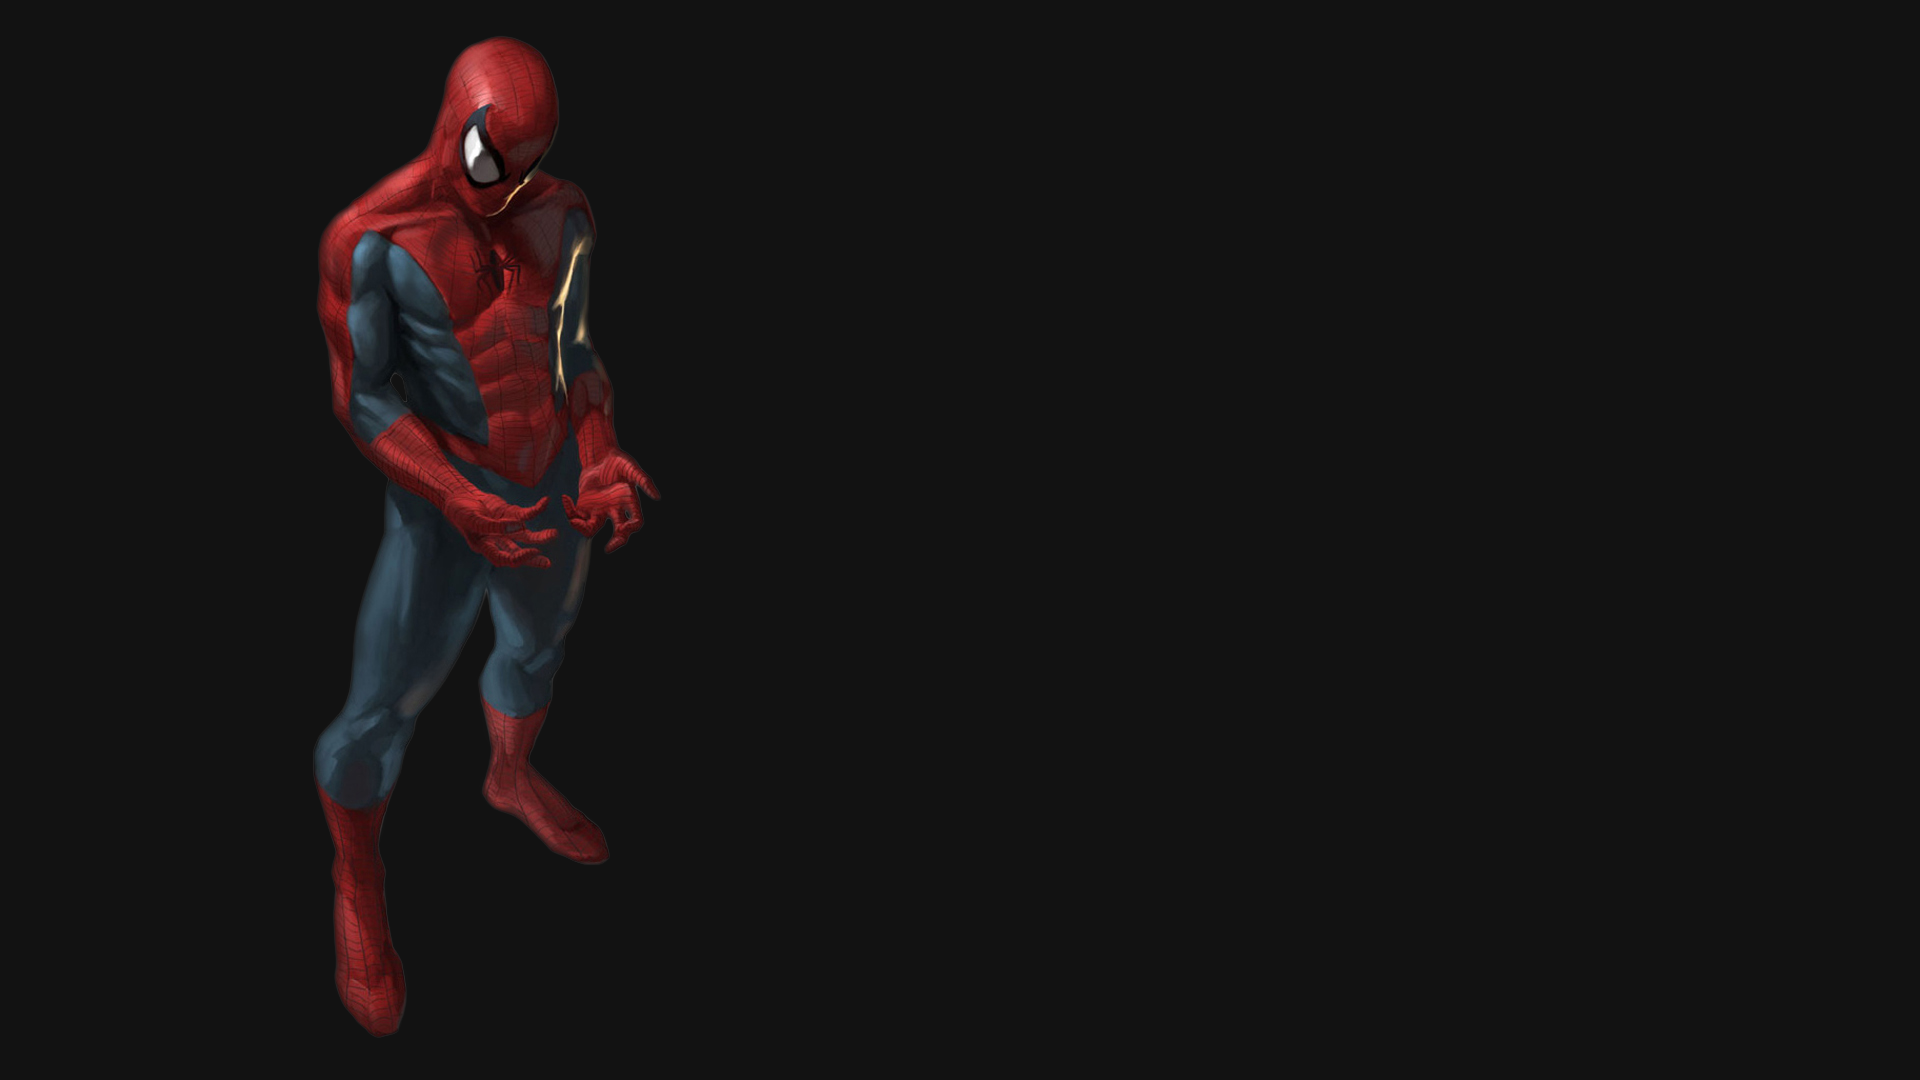 Hd wallpaper with black background - Spiderman Black Background Hd Wallpaper For Desktop